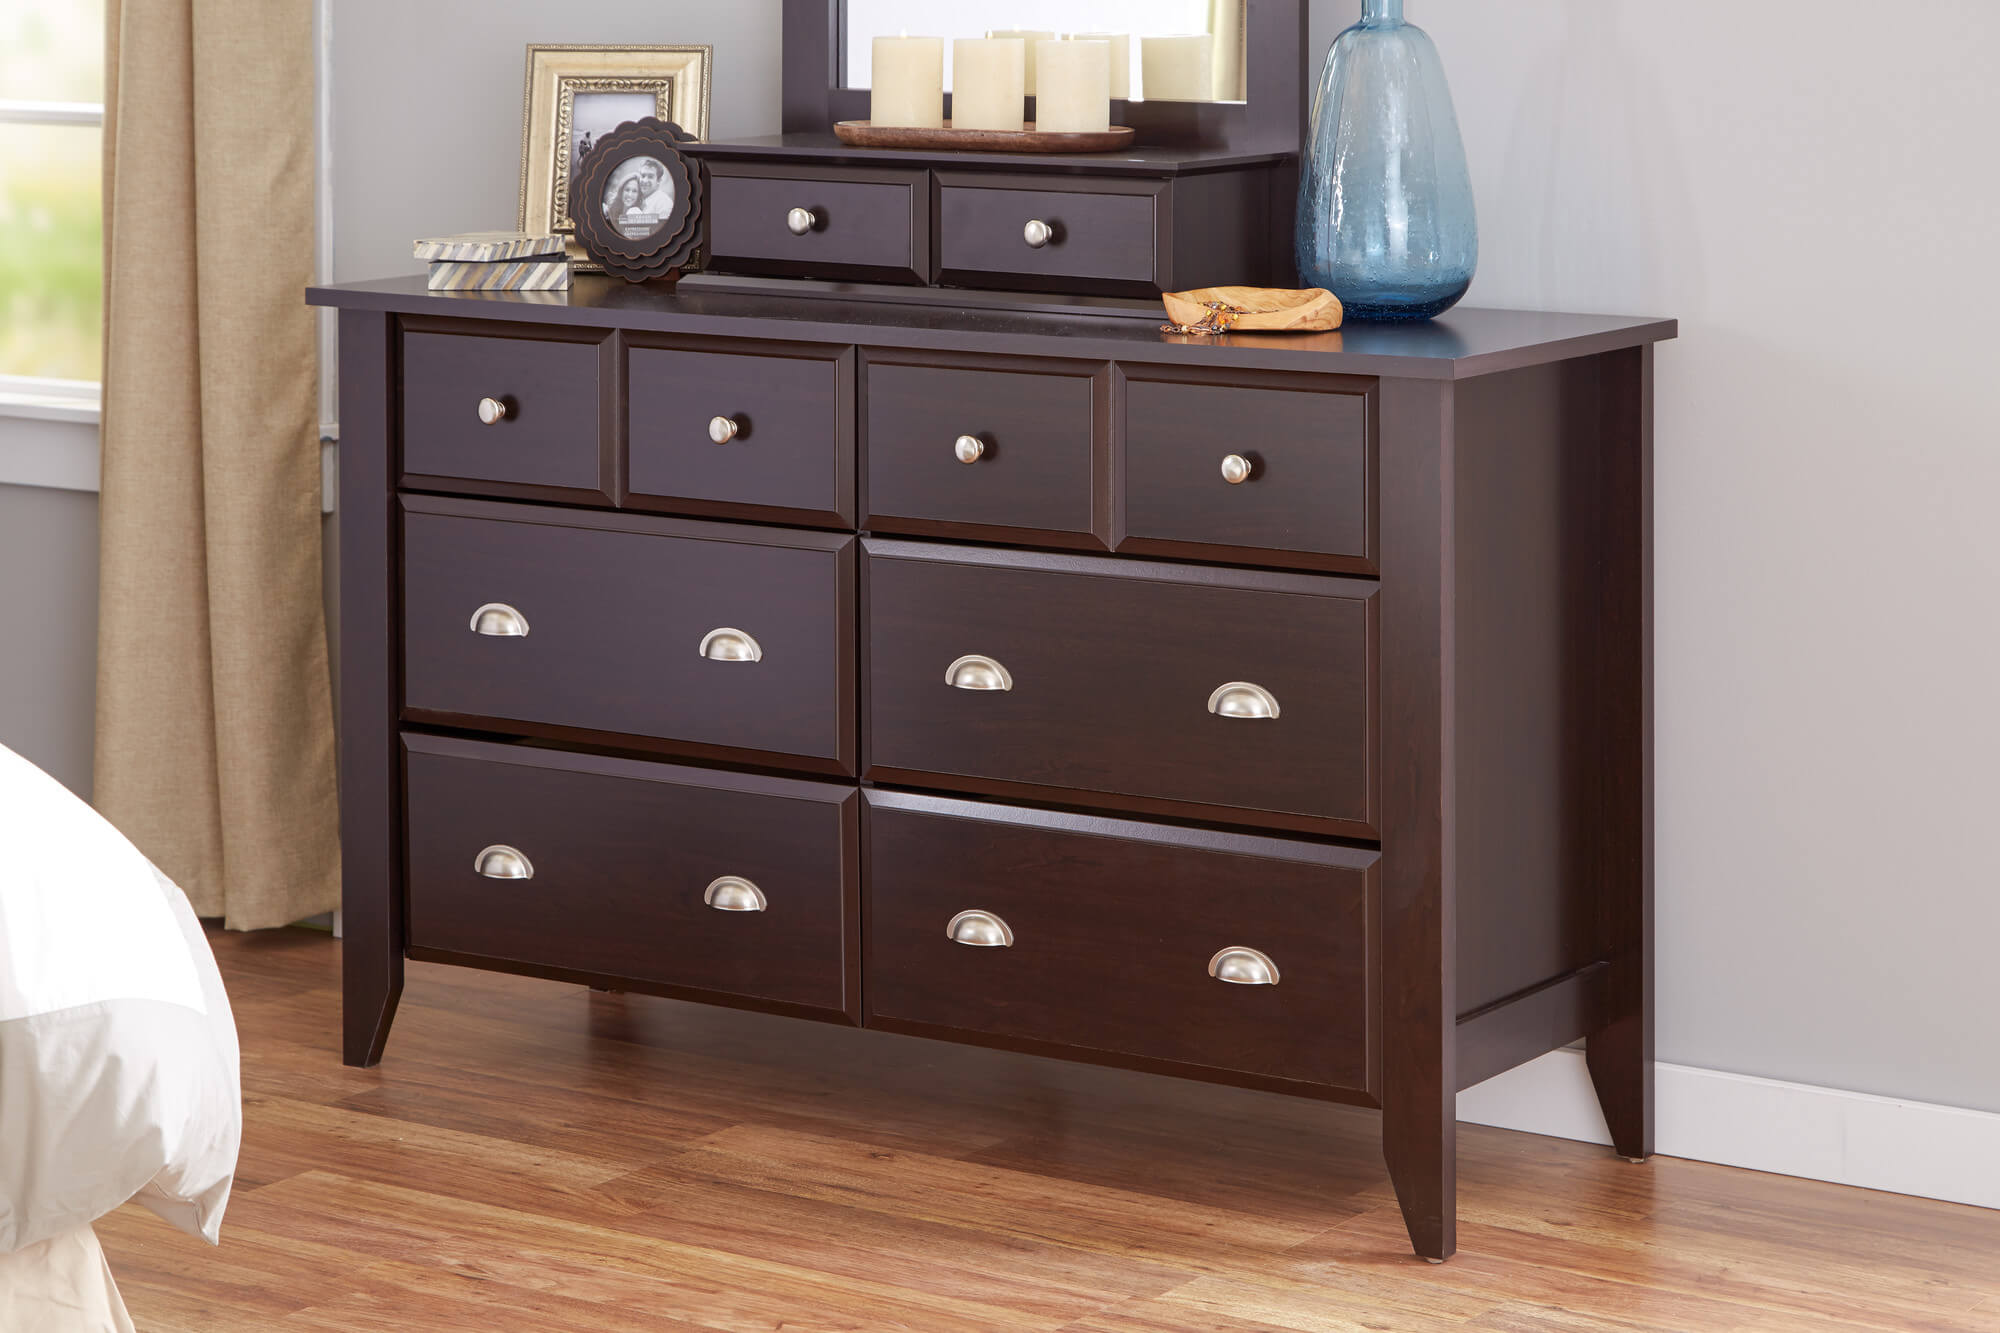 Details About White 3 Piece Storage Drawers Twin Bed Box: 21 Types Of Dressers & Chest Of Drawers For Your Bedroom